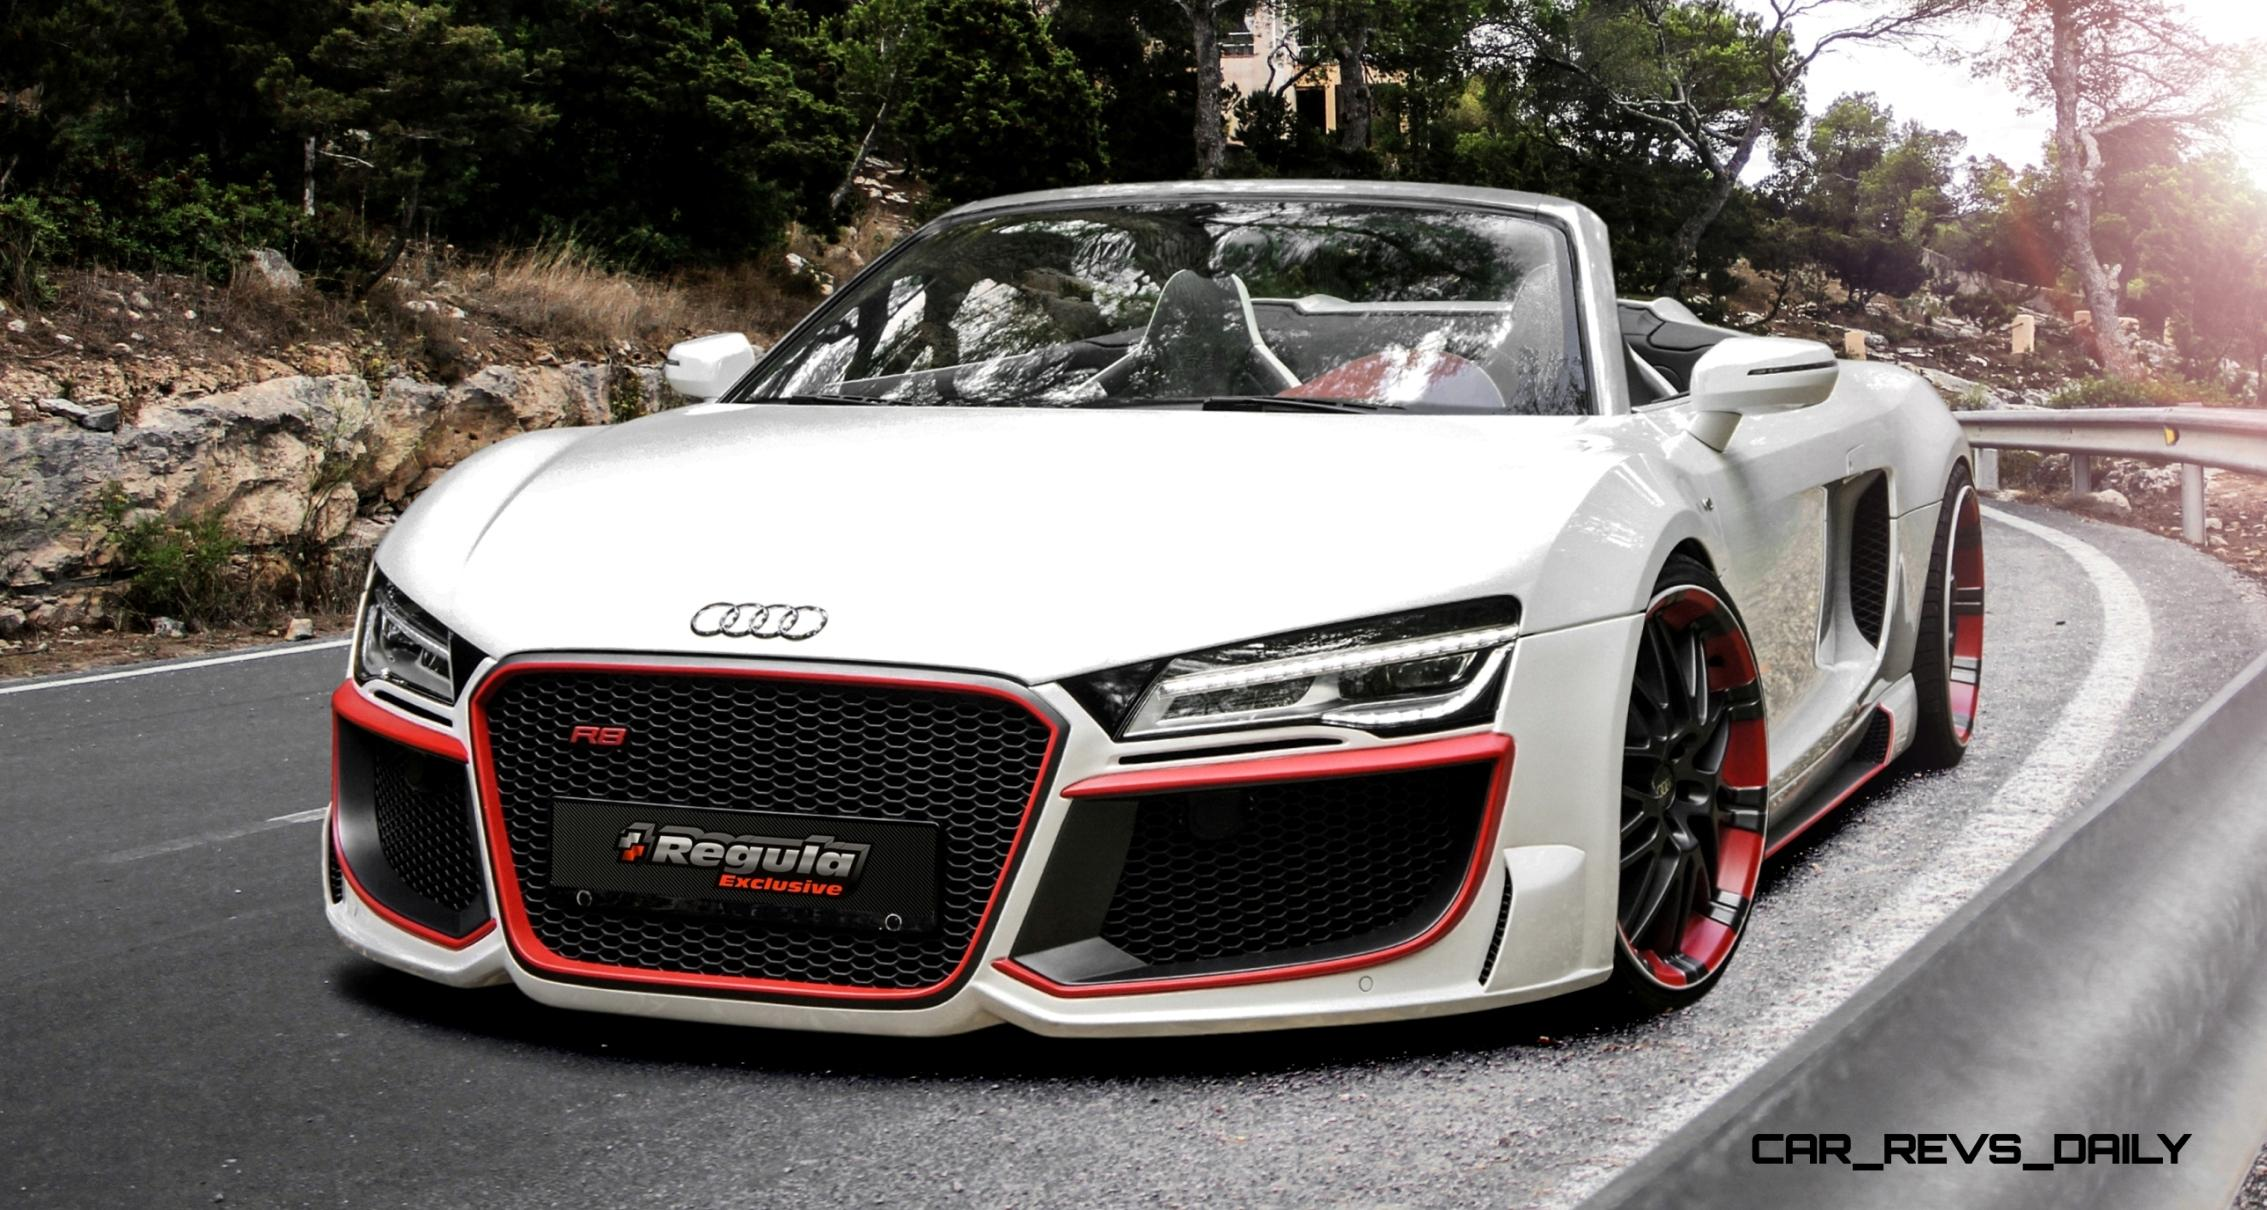 REGULA EXCLUSIVE Bodykits for Audi R8, Porsche Panamera and Porsche Cayenne Are Wild!